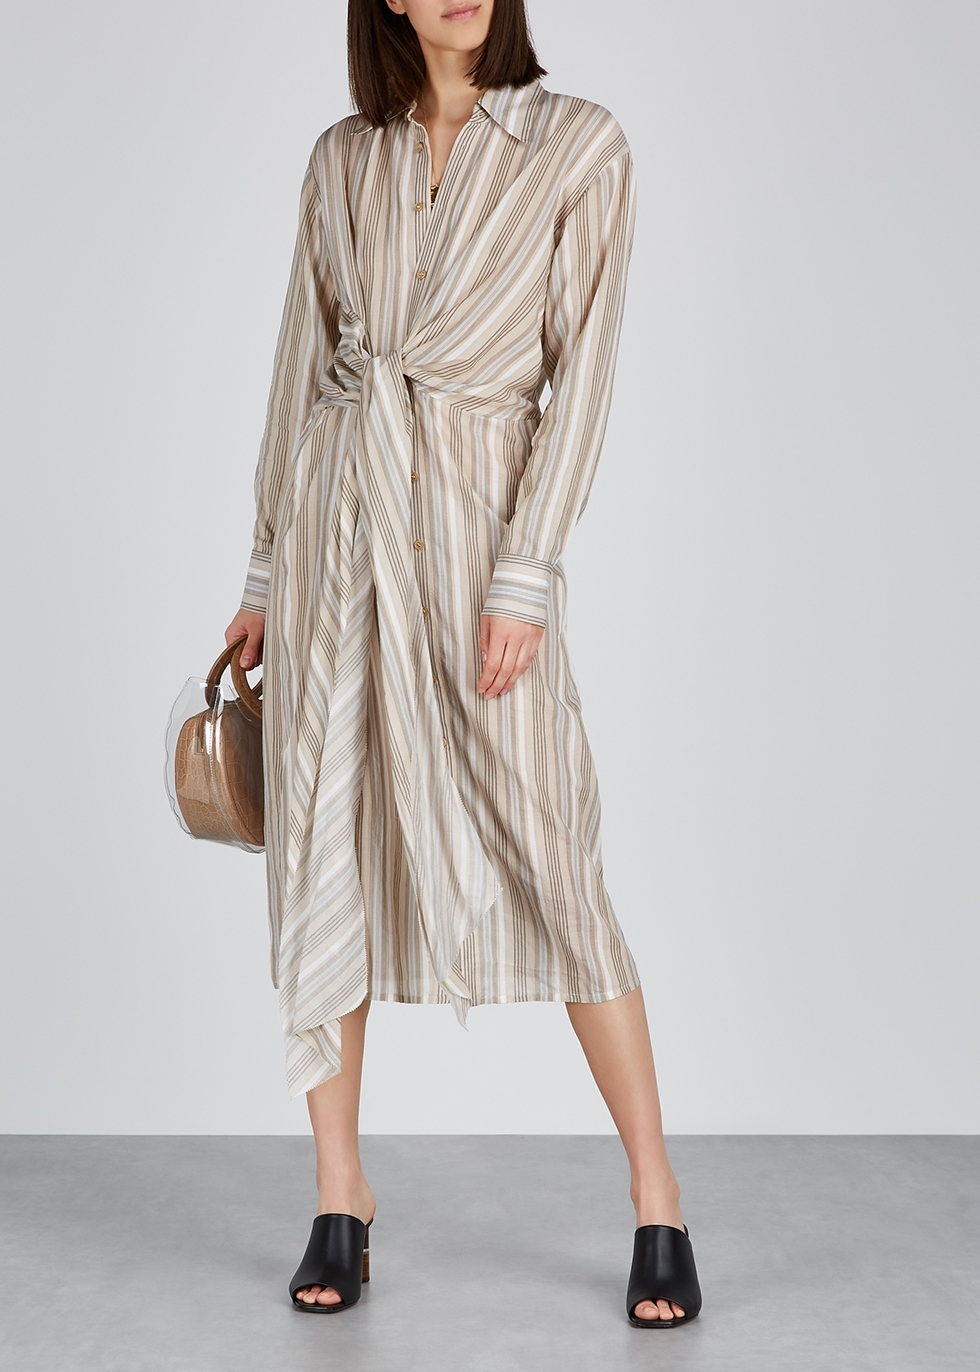 Striped cotton shirt dress - Acne Studios